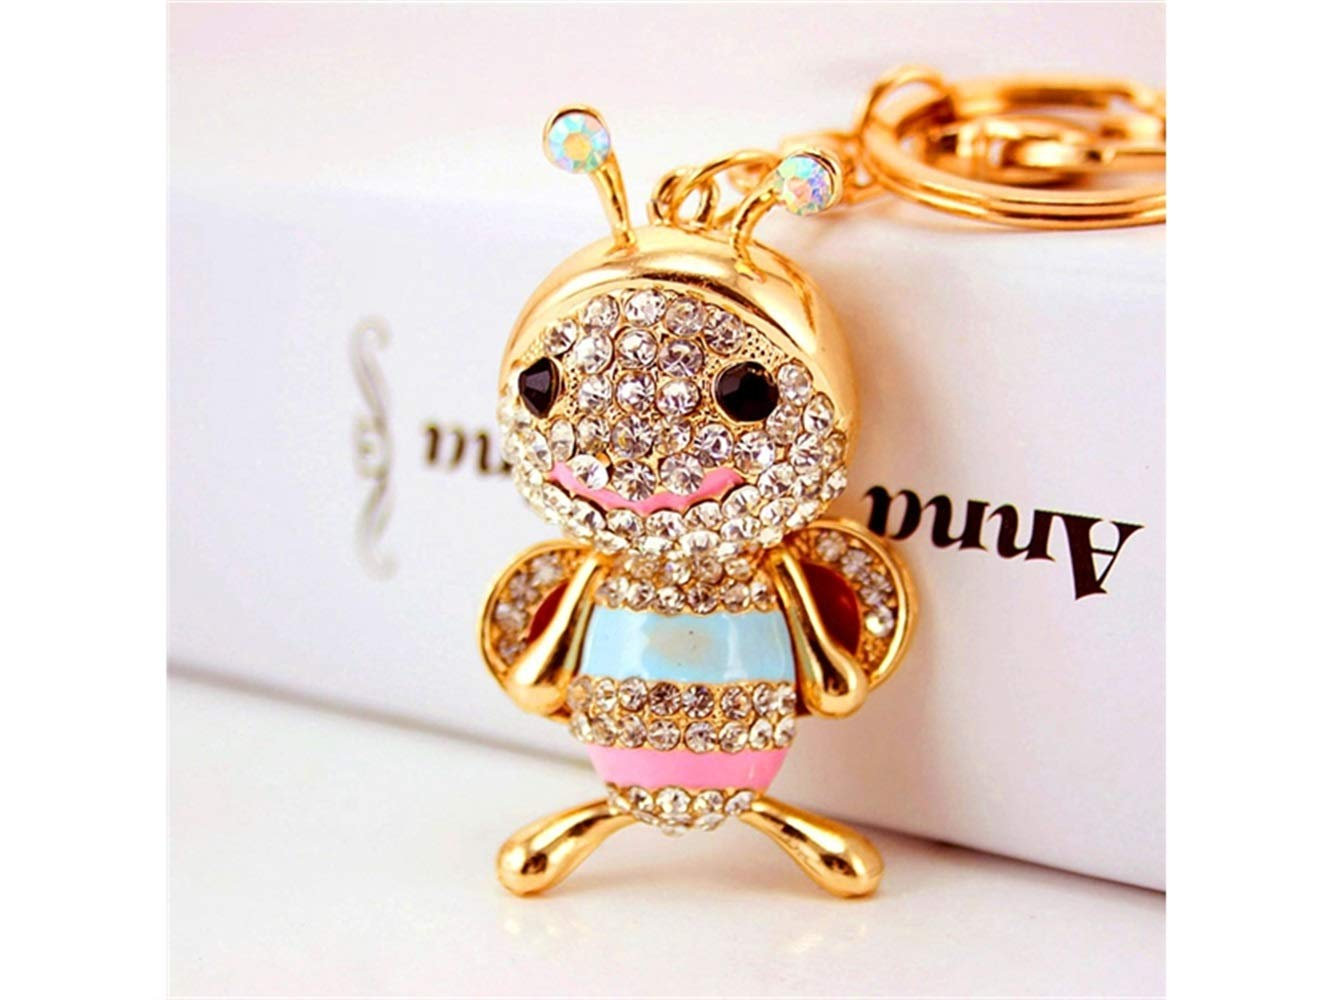 Car Keychain, Exquisite Cute Little Bee Keychain Animal Key Trinket Car Bag Key Holder Decorations(Colorful) for Gift